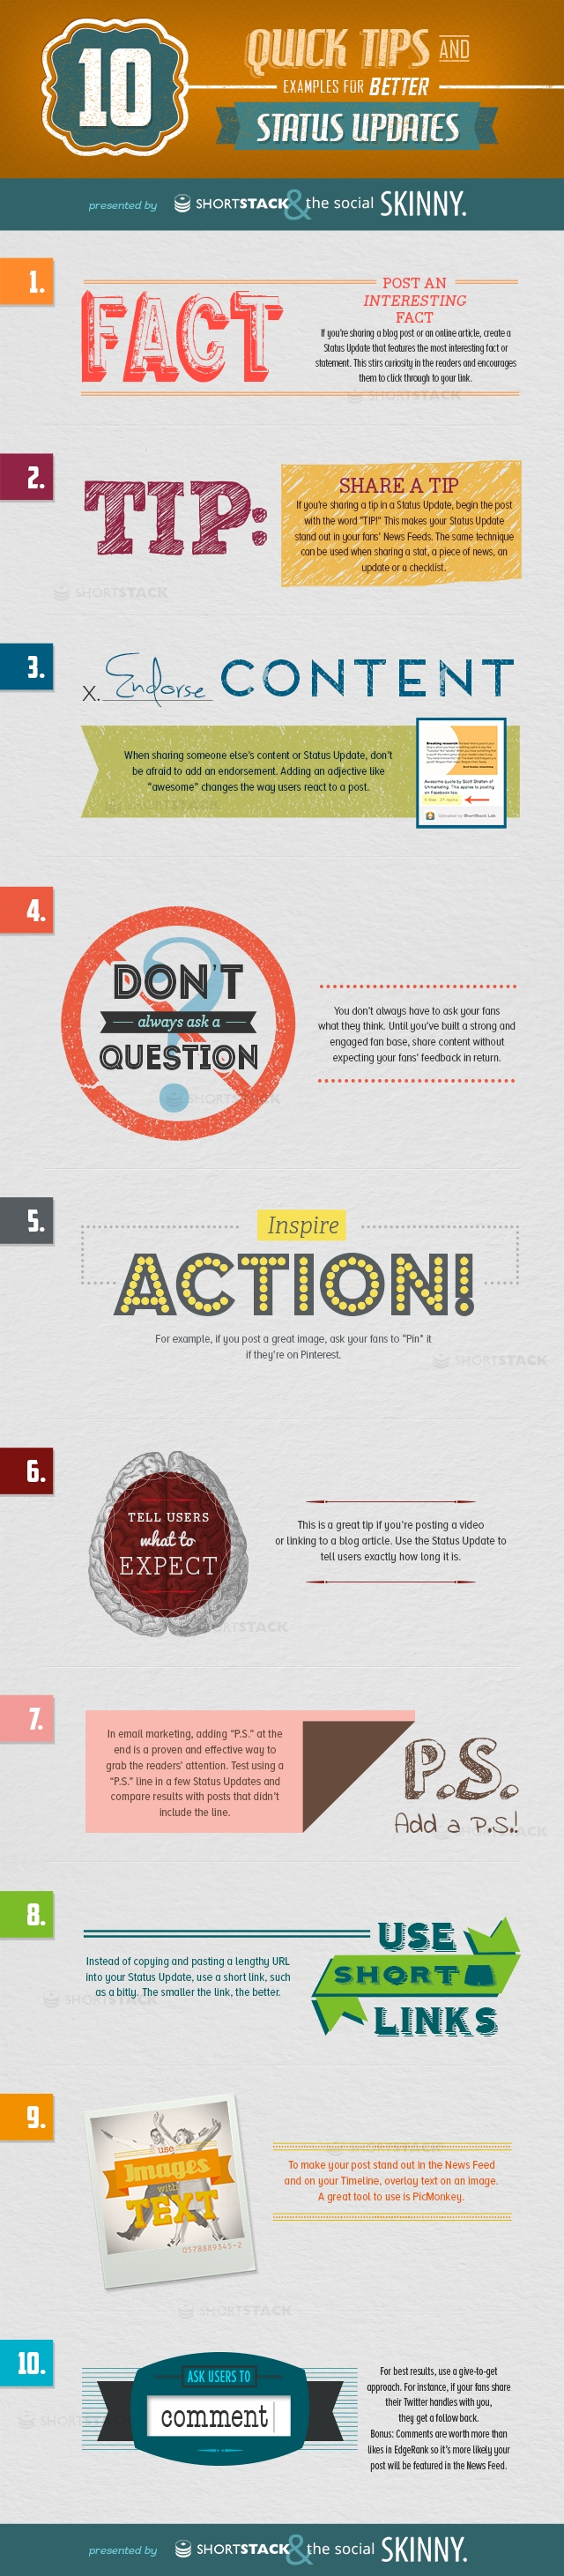 ShortStack10StatusUpdatesInfographic 10 Tips for Better Social Media Status Updates [Infographic]